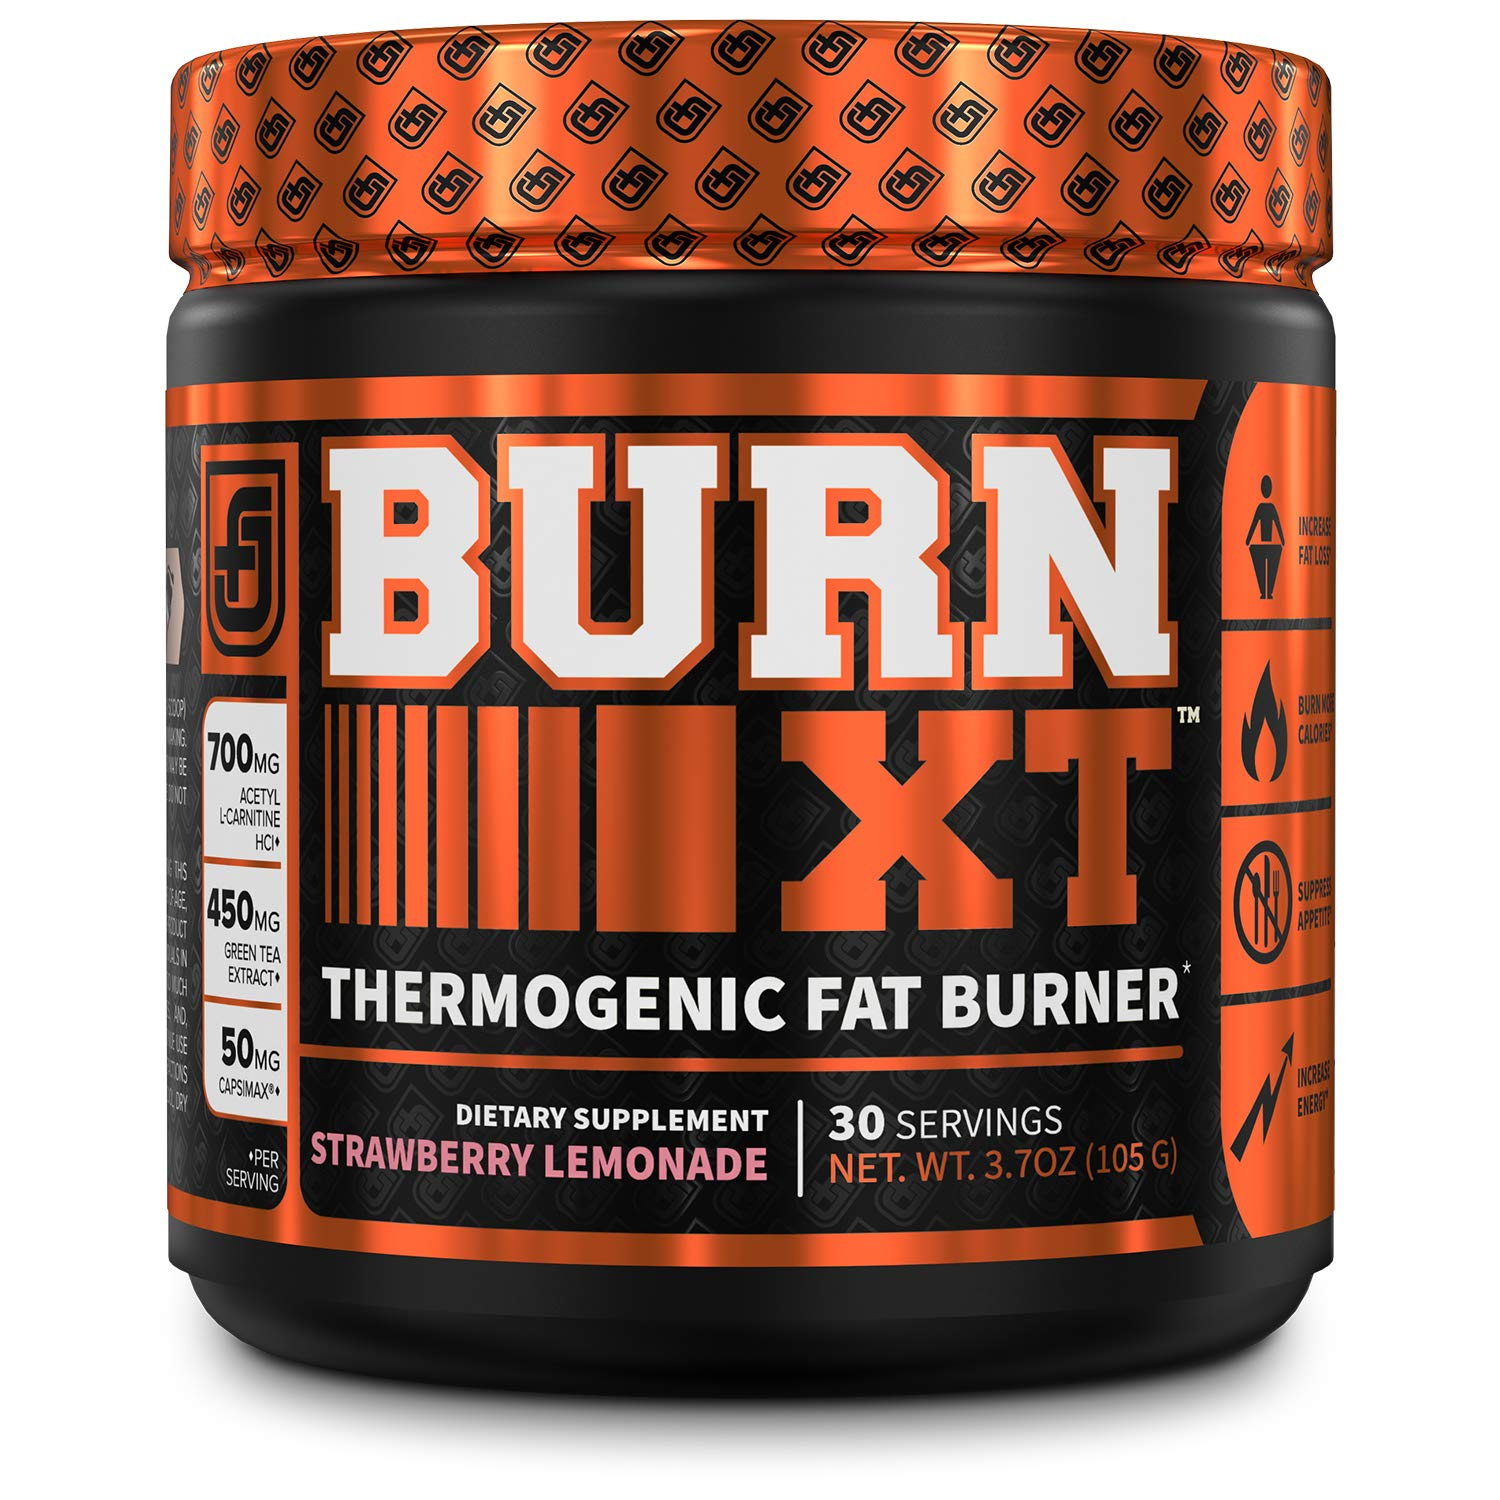 Burn-XT Thermogenic Fat Burner Powder - Weight Loss Supplement, Appetite Suppressant, Pre Workout Energy Booster - Acetyl L Carnitine, Green Tea Extract (EGCG), Capsimax - 30 Sv, Strawberry Lemonade by Jacked Factory